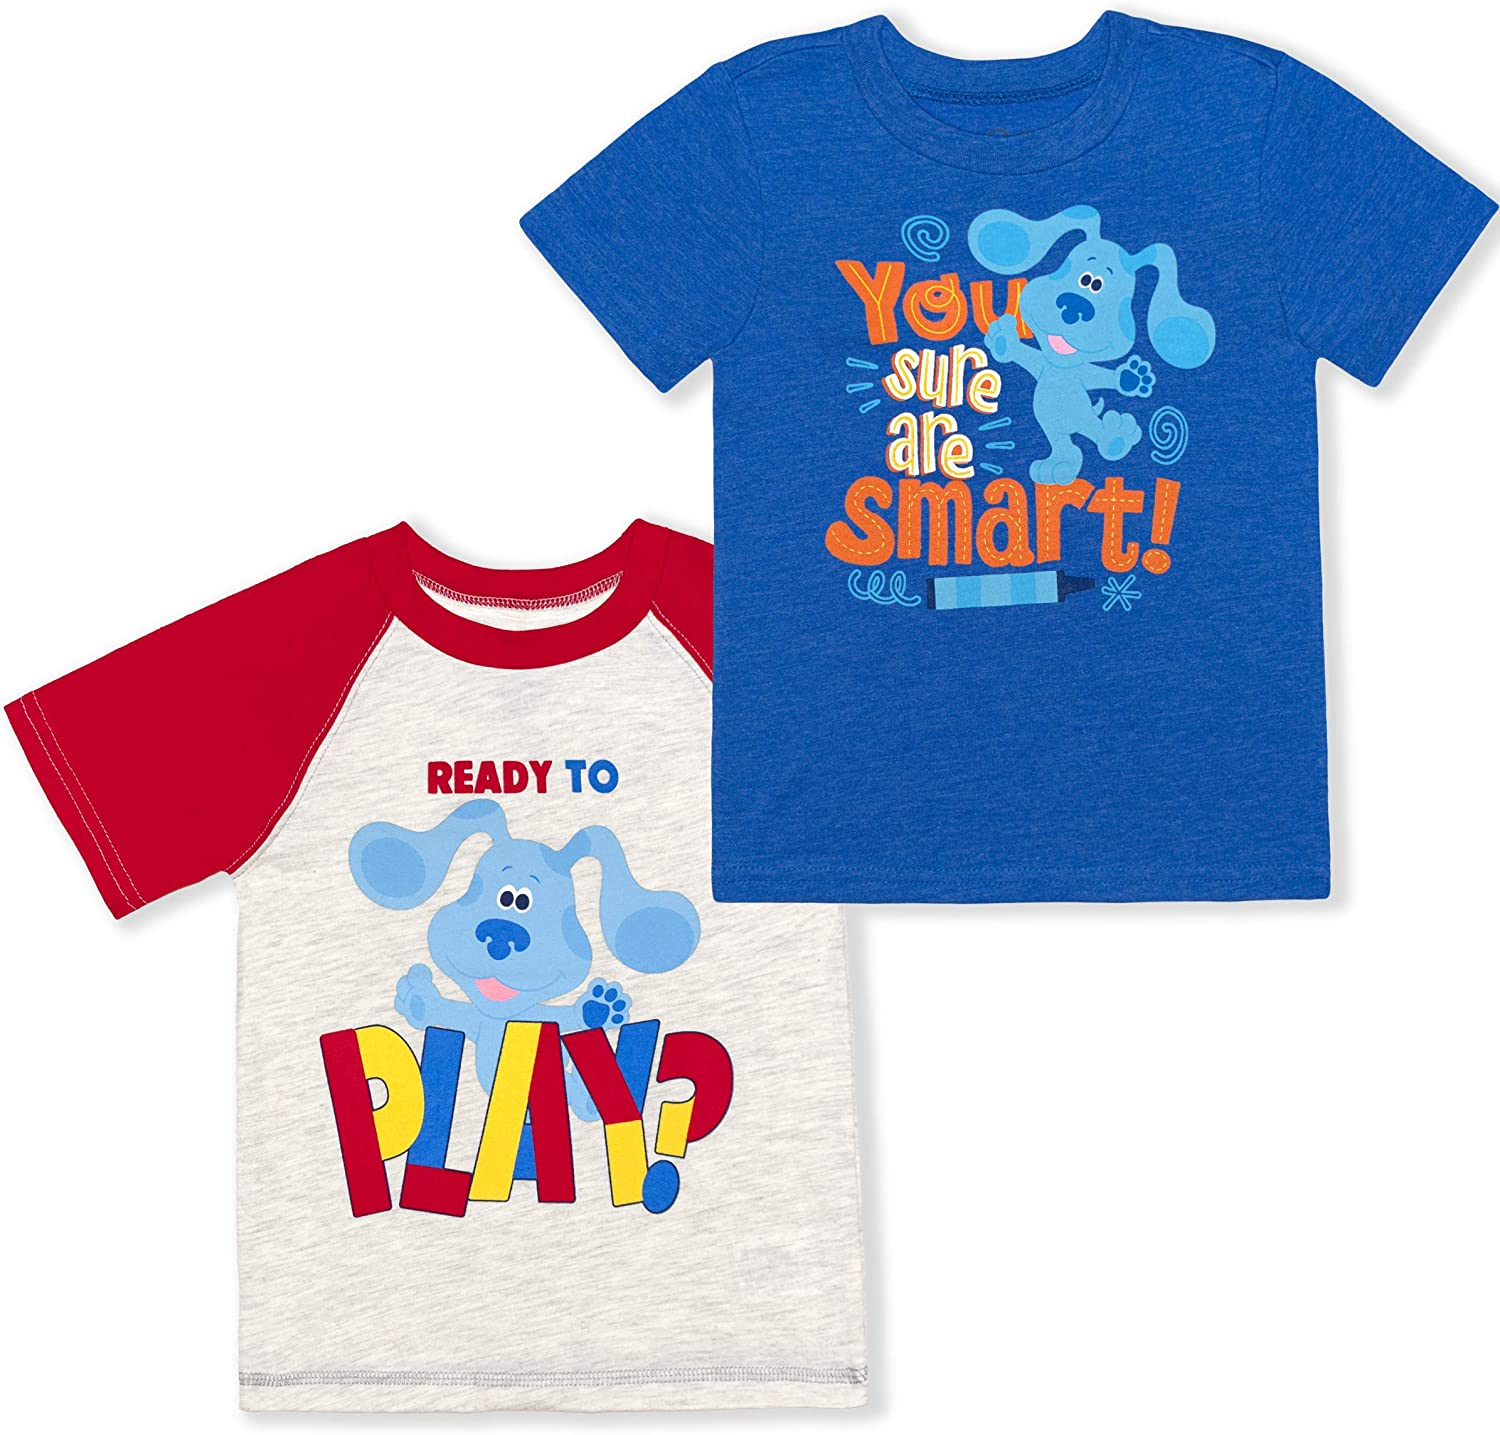 Nickelodeon Boy's 2-Pack Blue's Clues Ready to Play Short Sleeve Graphic T-Shirt Set